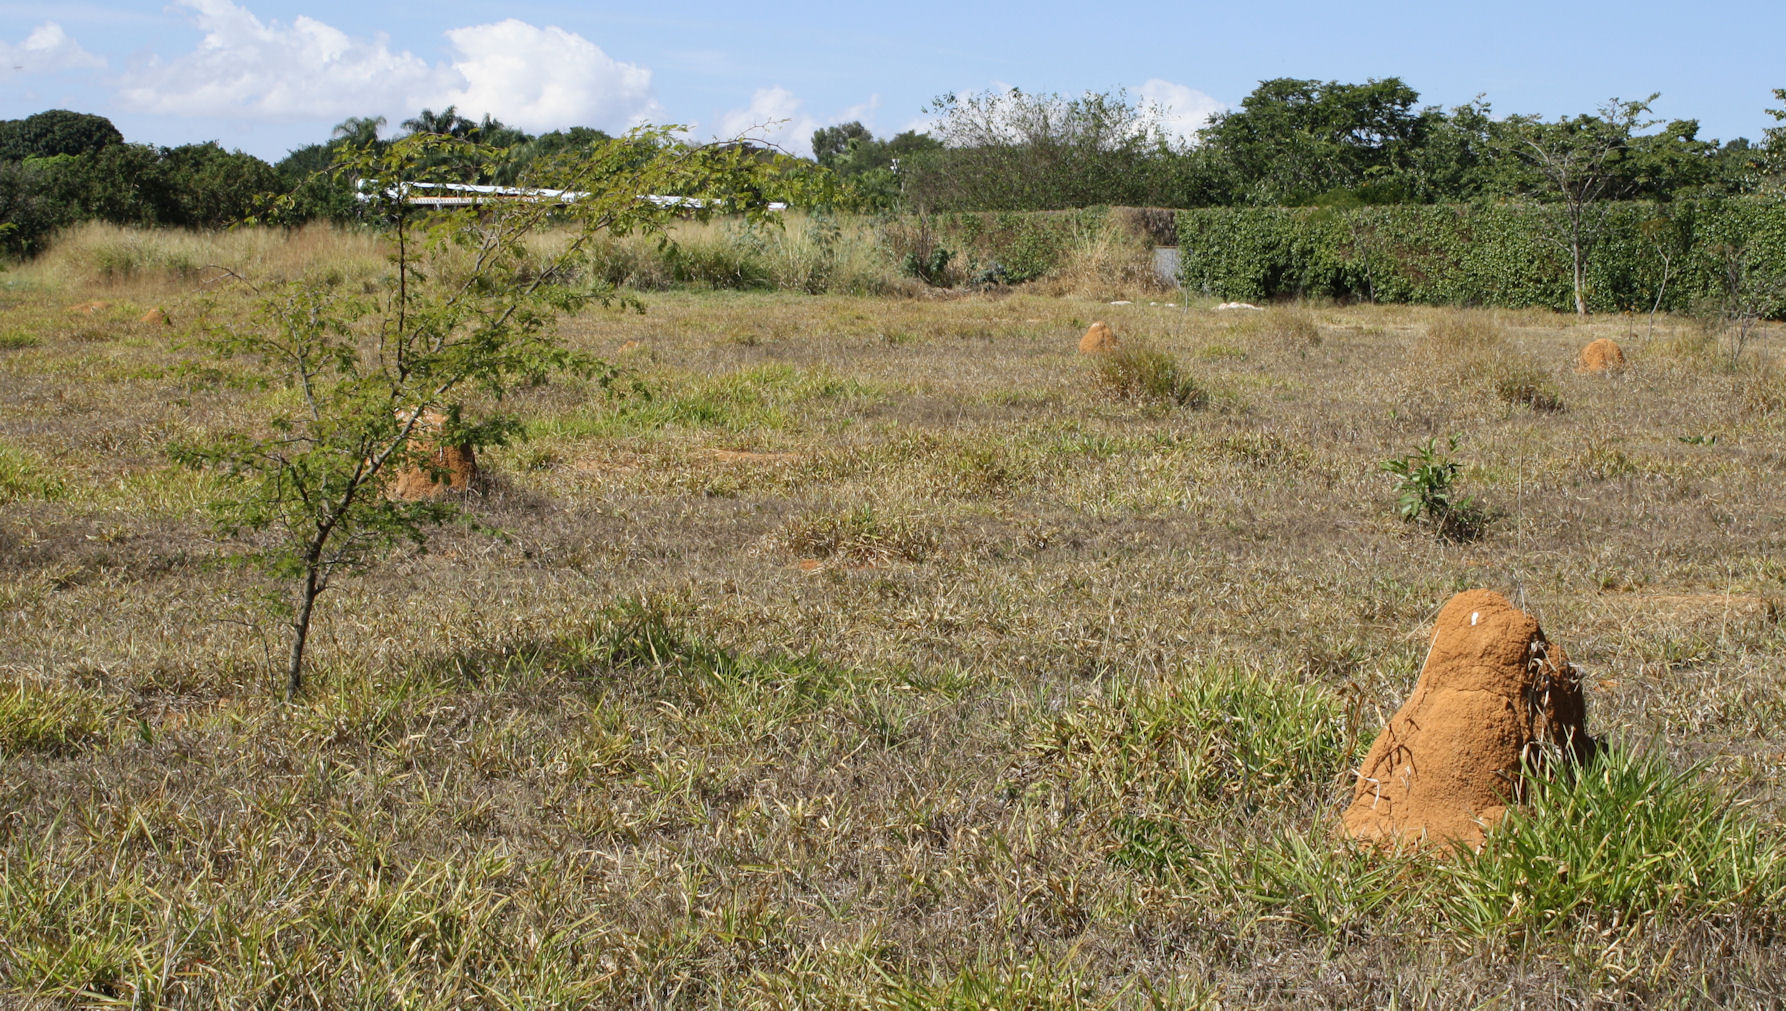 Termite_mounds_in_Brasilia.jpg